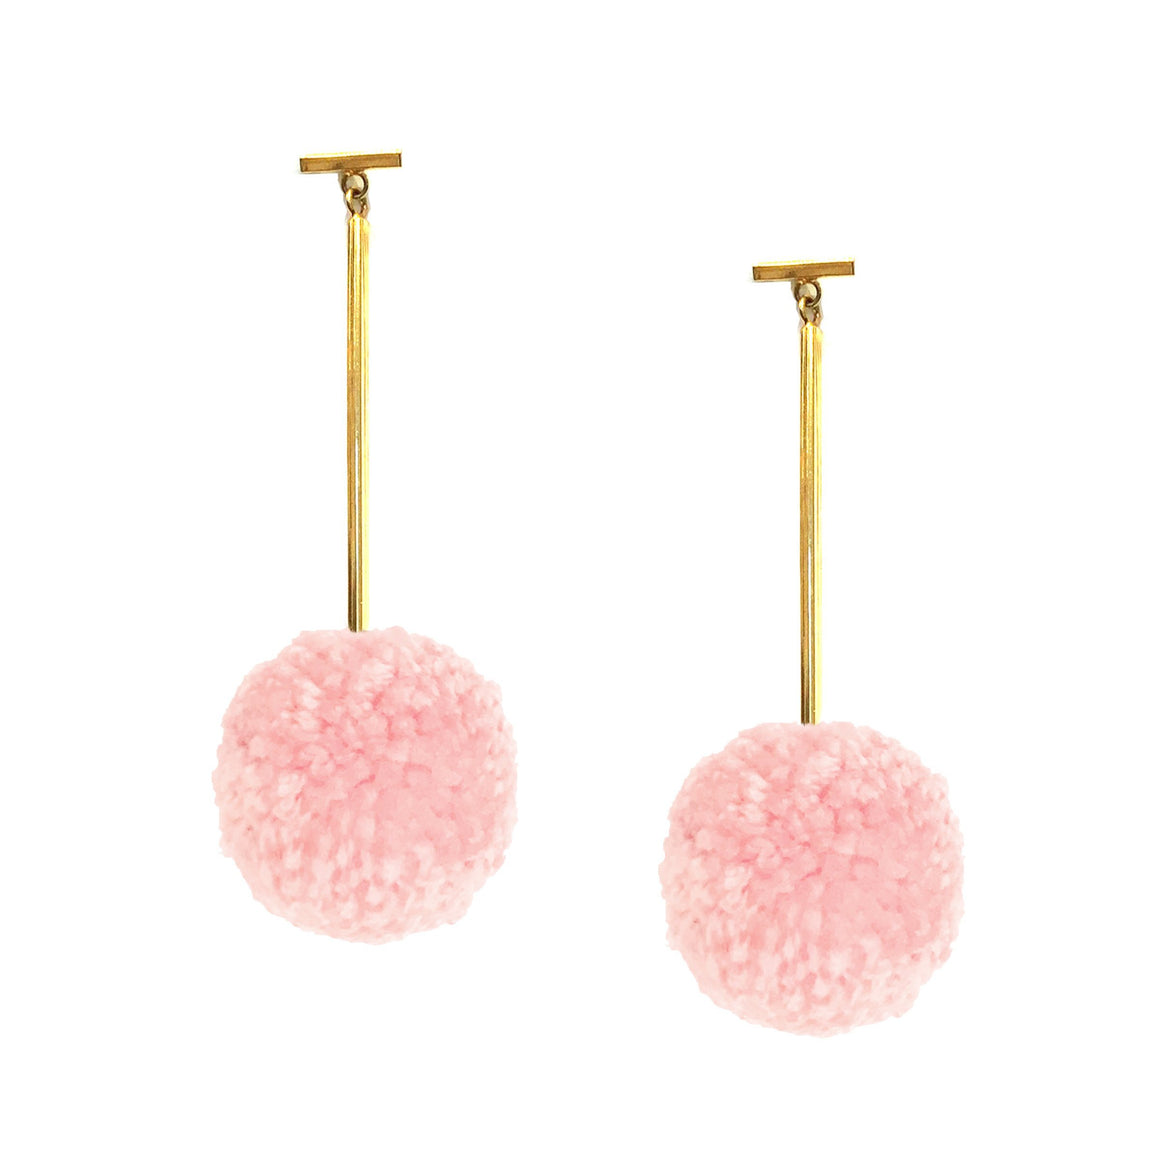 "Soft Pink 2"" Yarn Pom Pom T Bar Earrings"